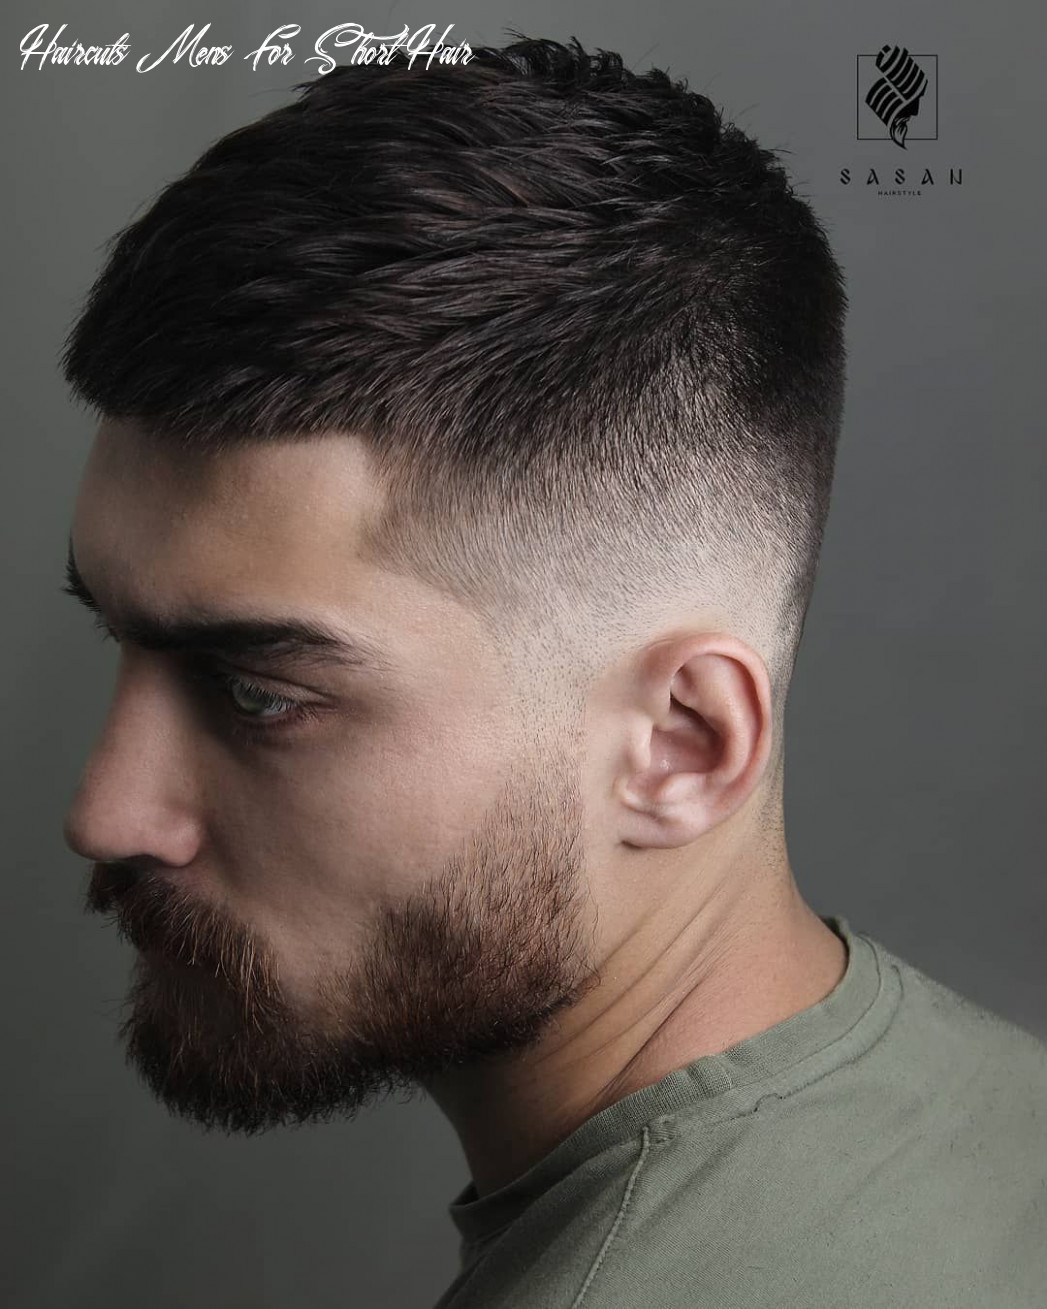 12 cool haircuts for men (1212 styles)   young men haircuts, mens